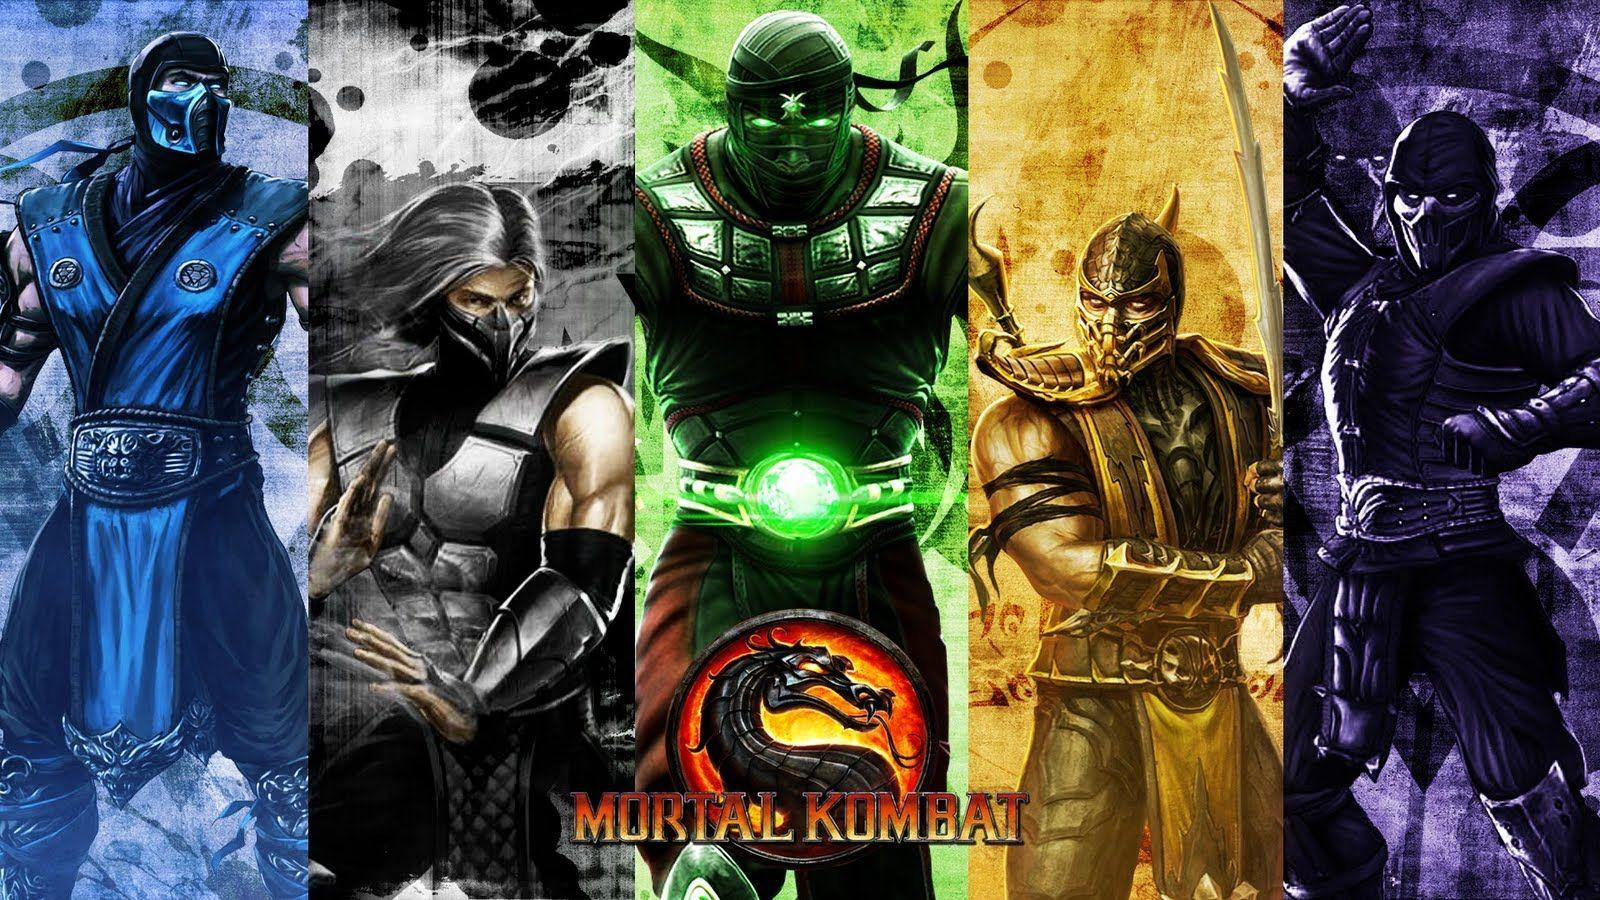 Mortal Kombat 9 Noob Wallpapers - Wallpaper Cave